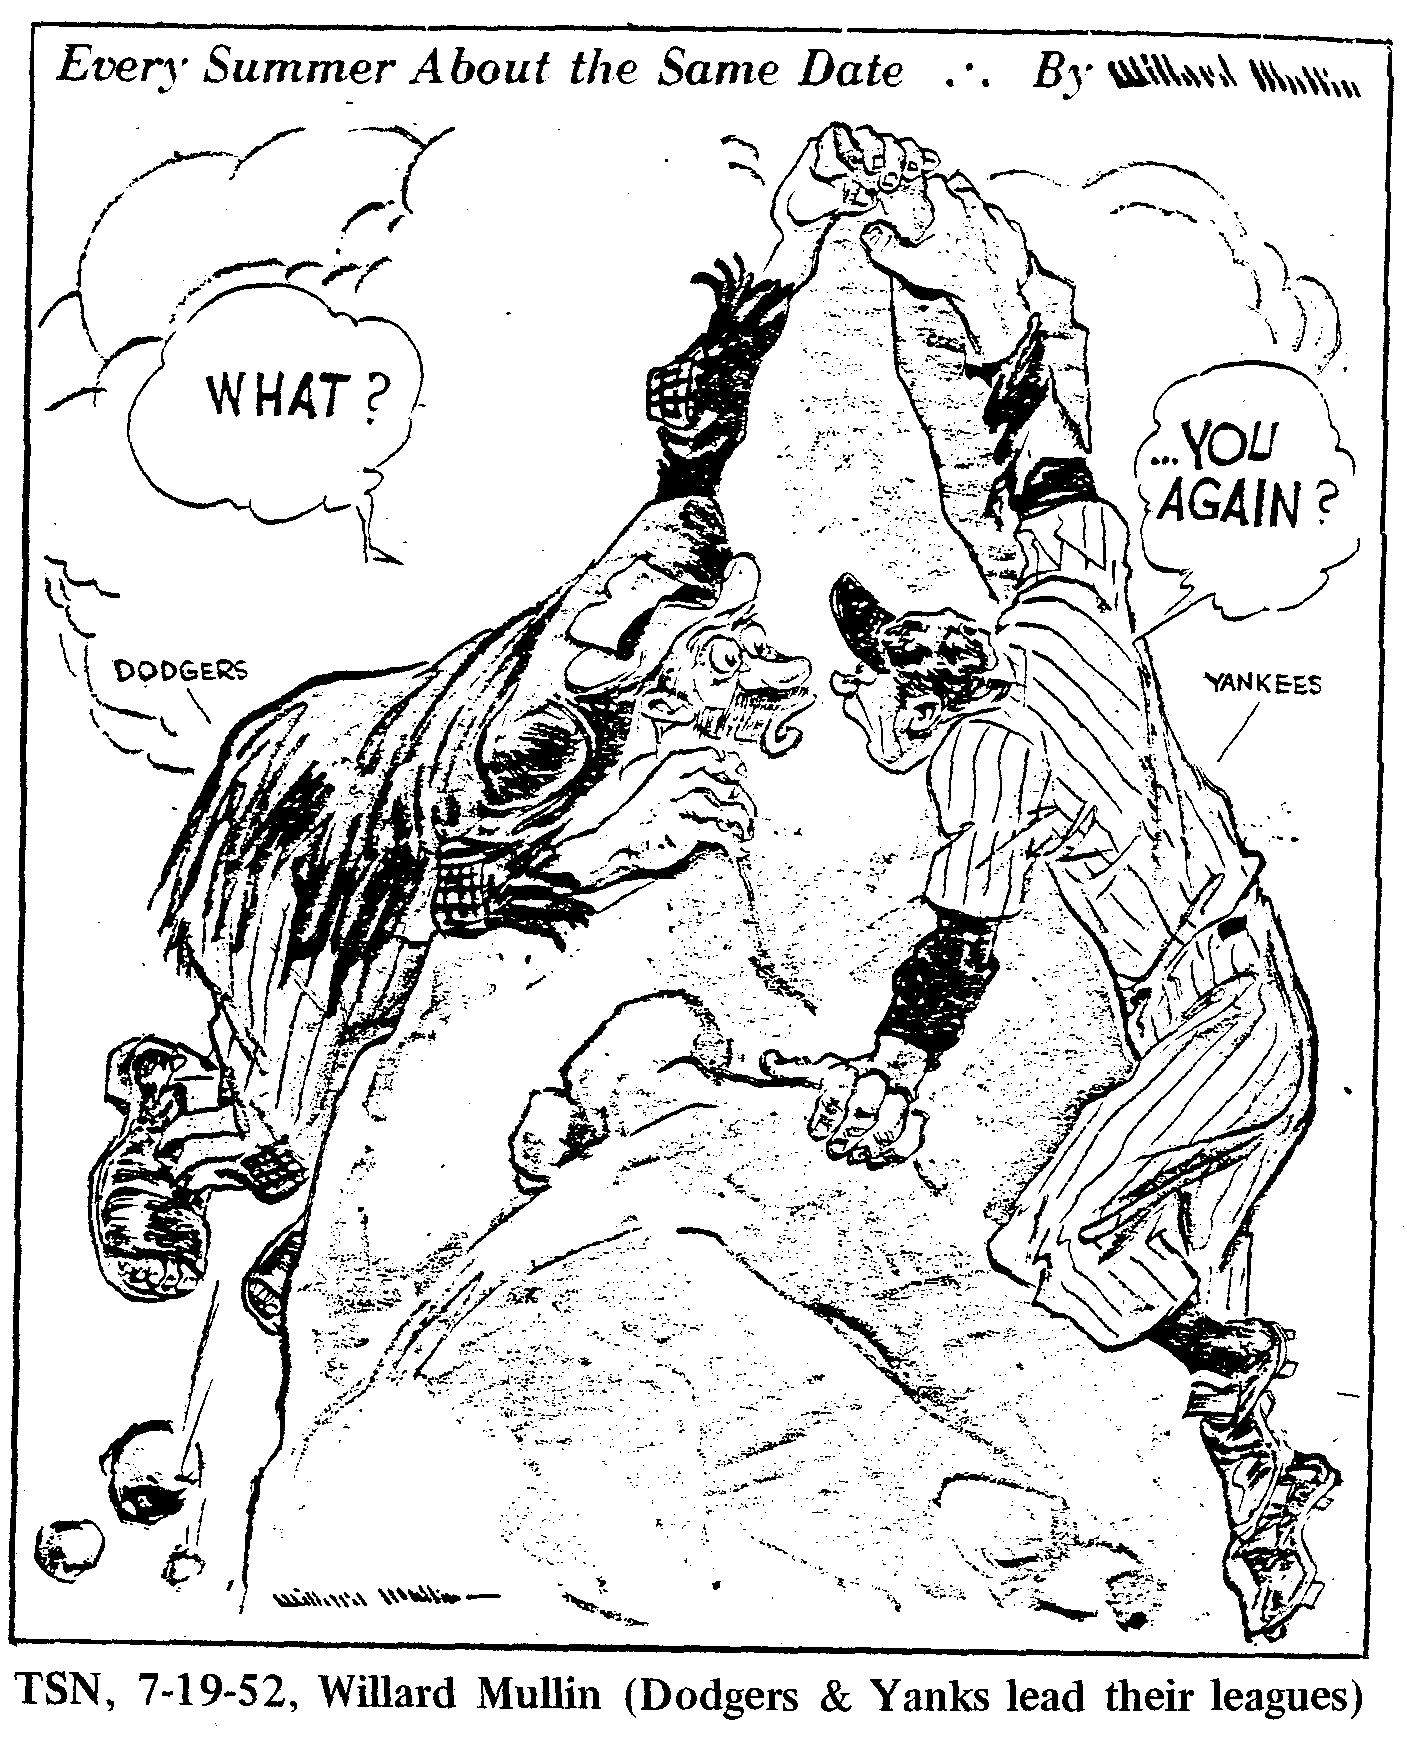 Willard Mullin cartoon, July 19, 1952 (THE SPORTING NEWS)